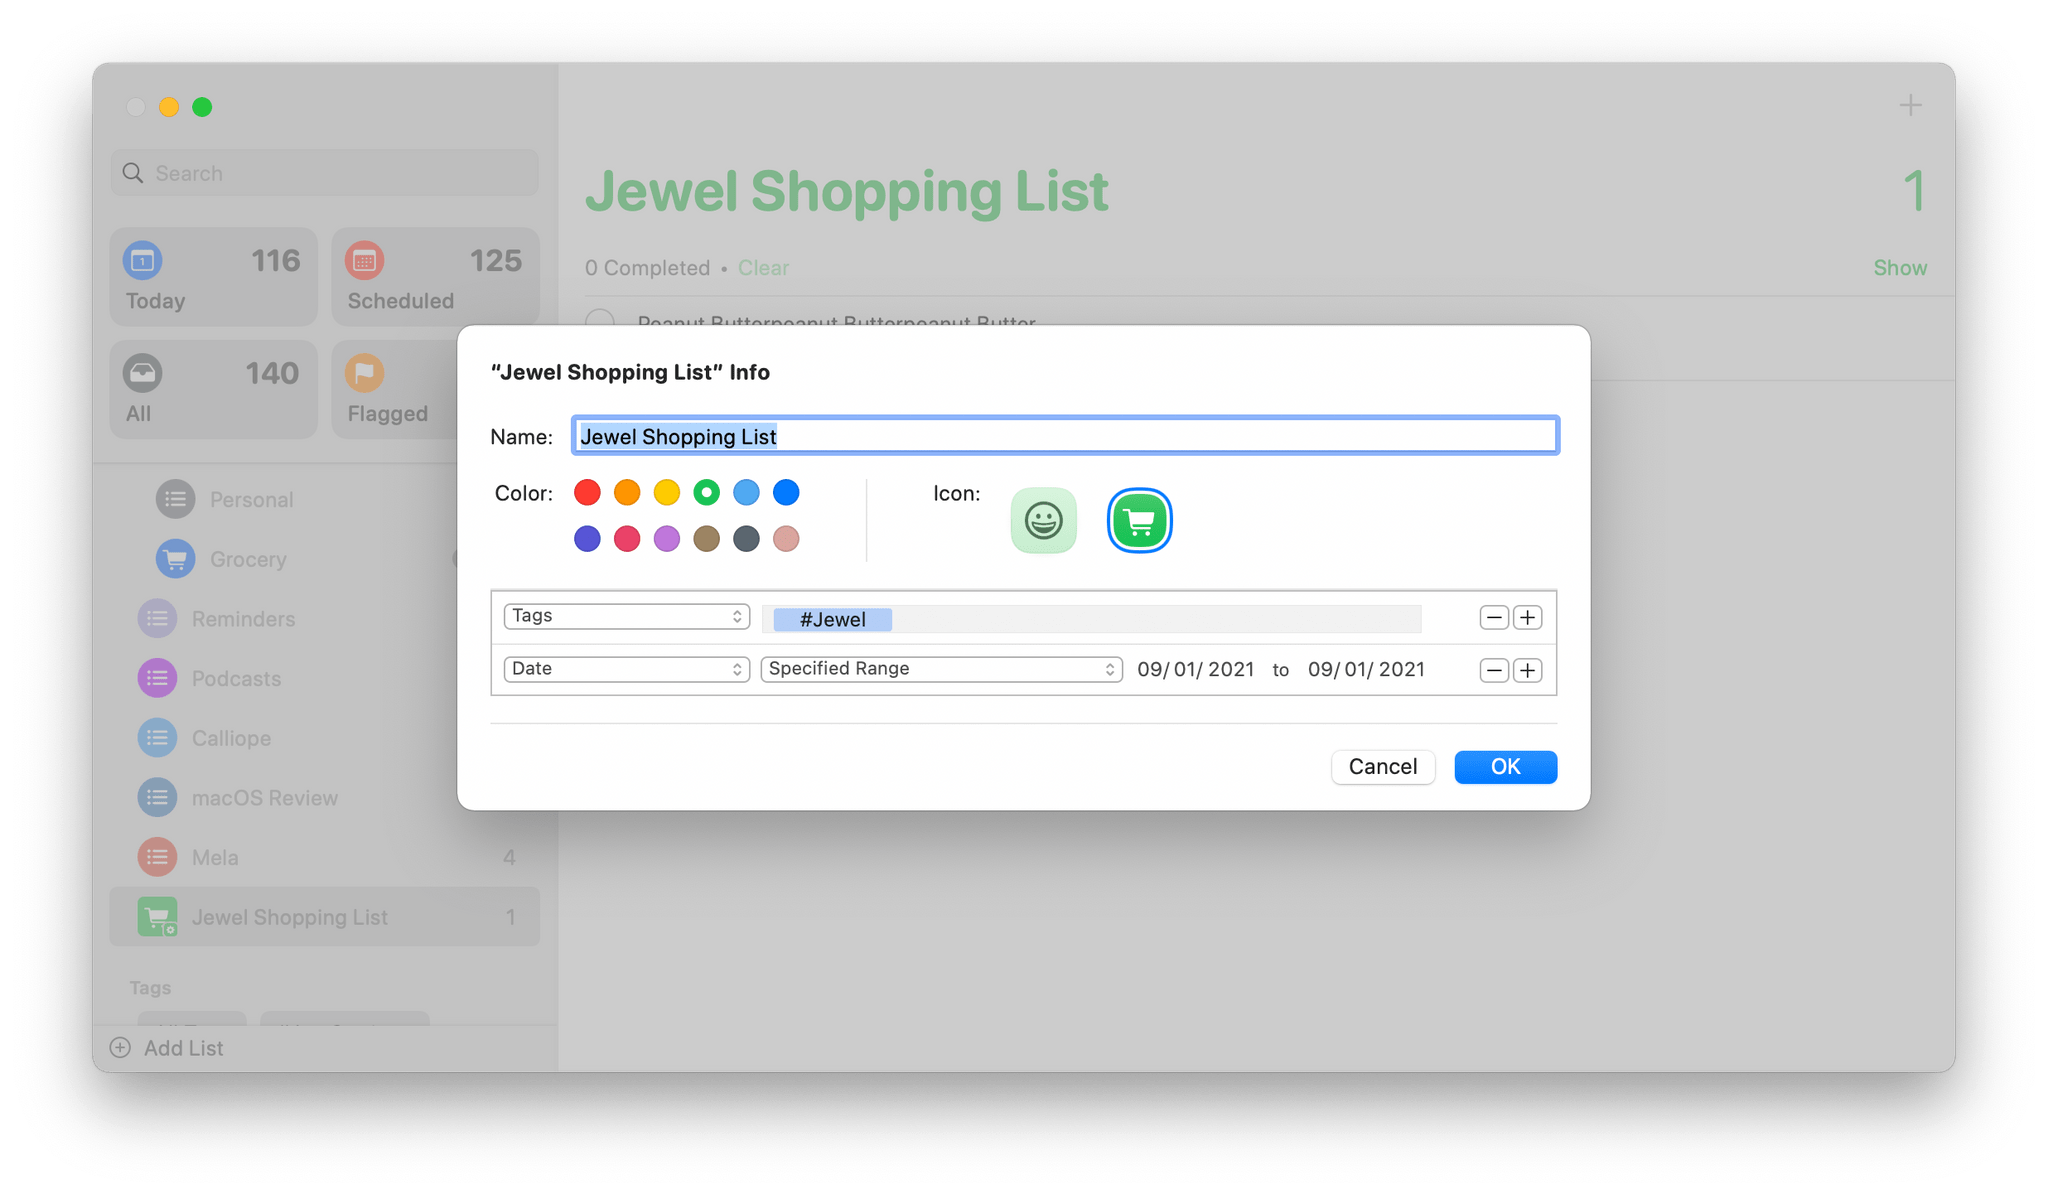 With Smart Lists, you can combine multiple filters to create a custom list.